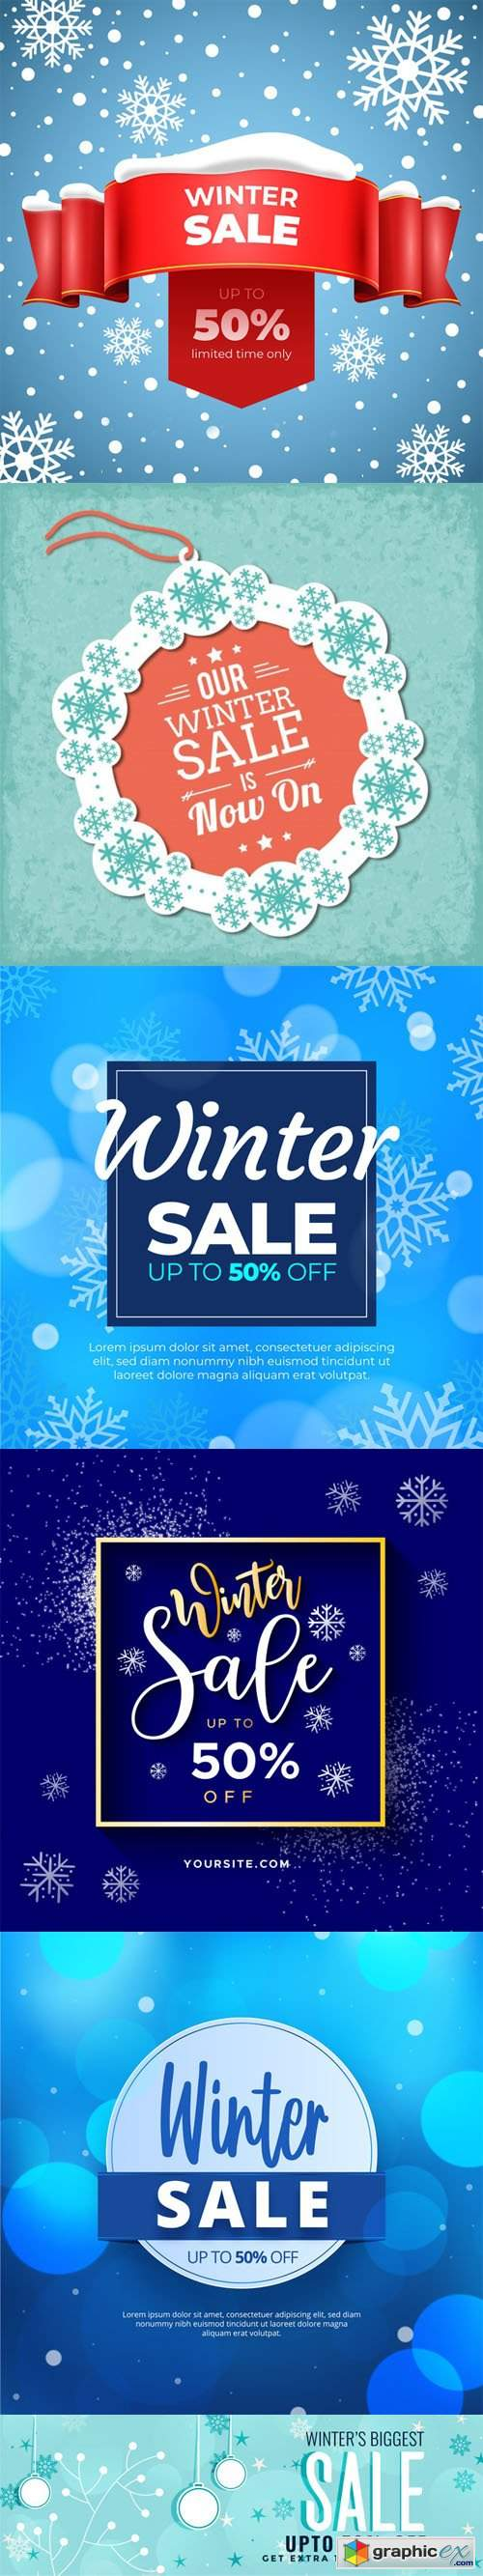 6 Winter Sales Vector Templates Collection